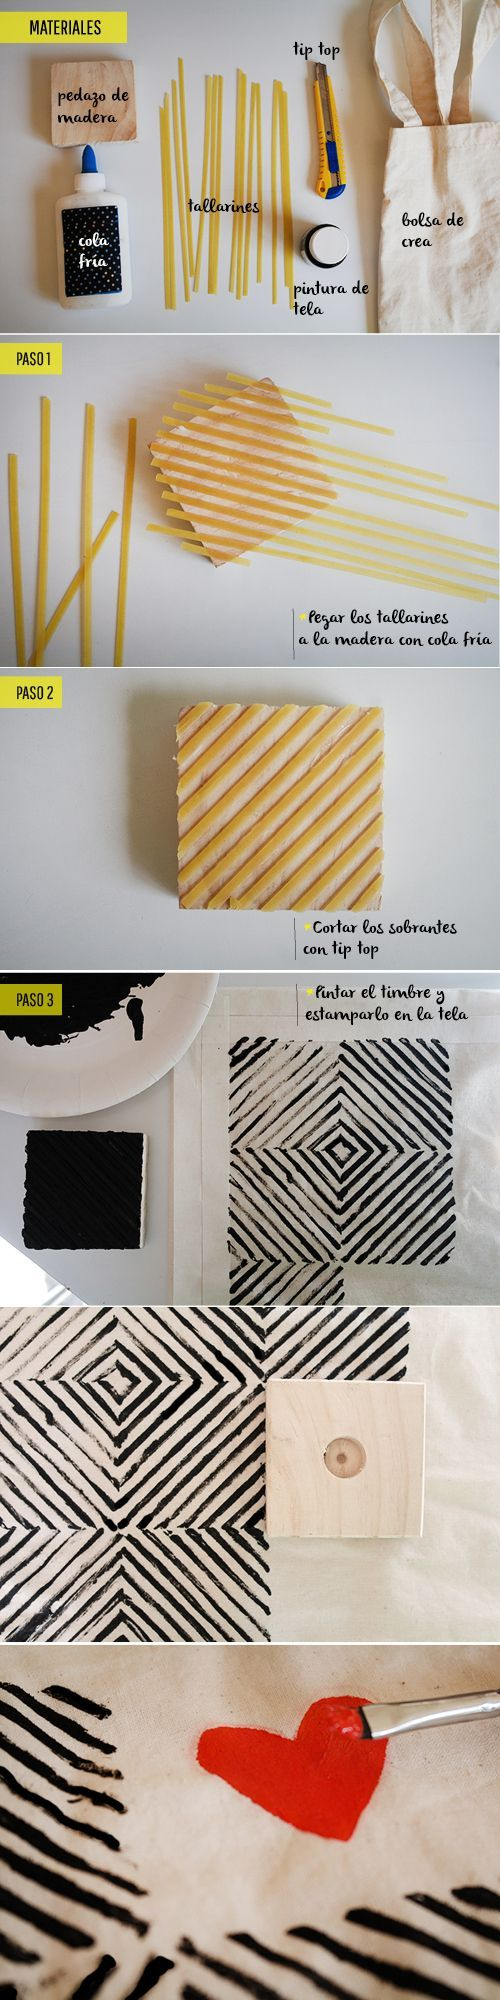 You can easily decorate your fabric bags, t-shirts or tablecloths by making your own stamps. One way to do is making a pasta bar stamp. Diagonally glue some pasta on a bar and dip this bar in paint…